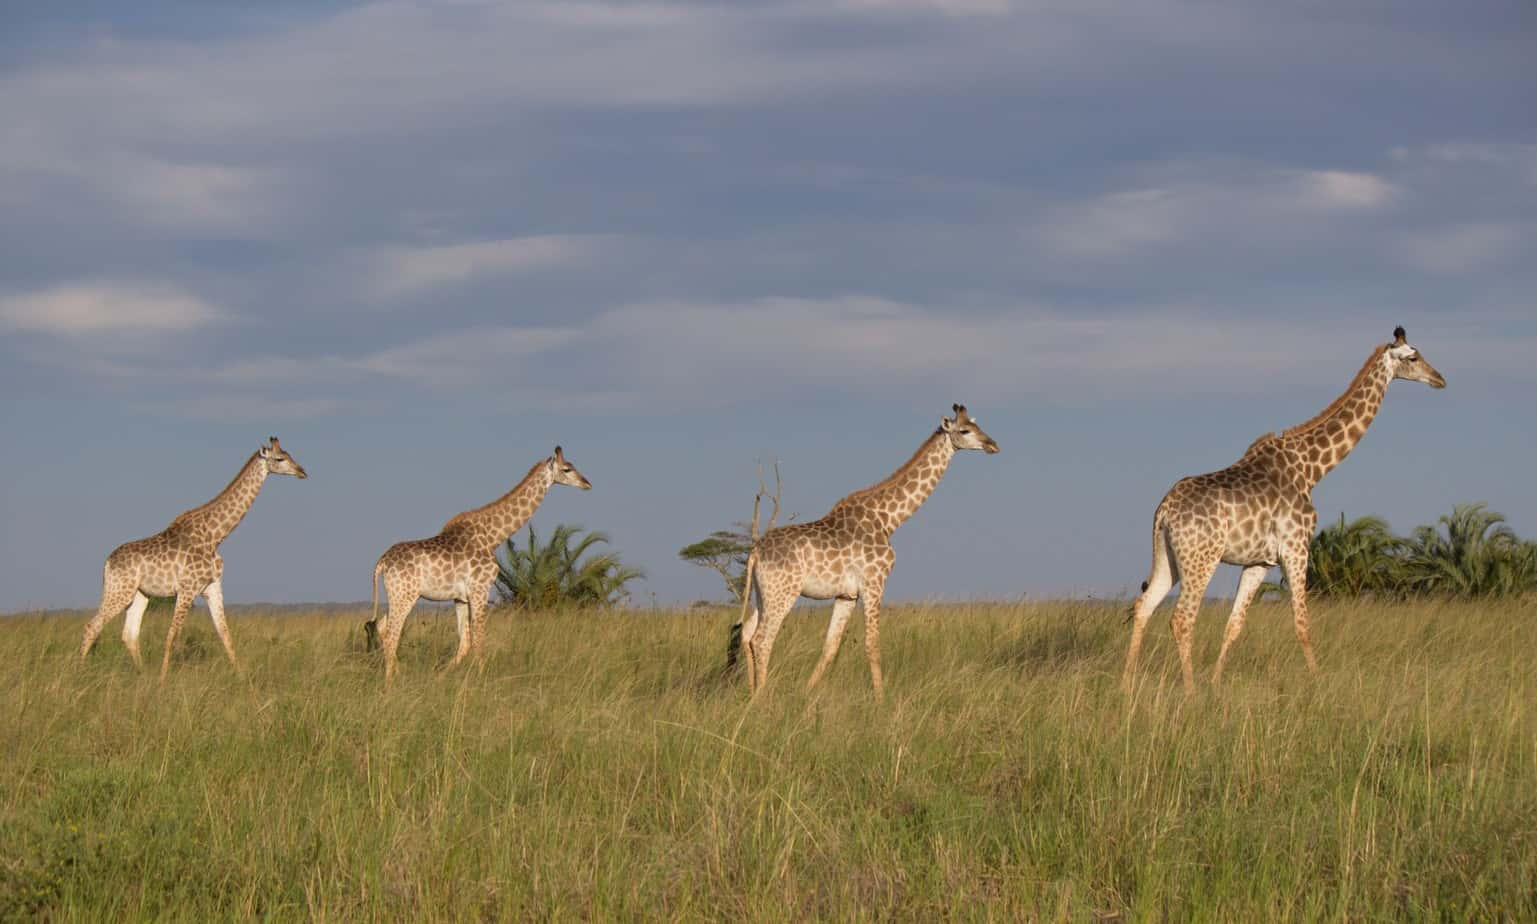 IMG 49891 - My African Top 5 - Photography Moments